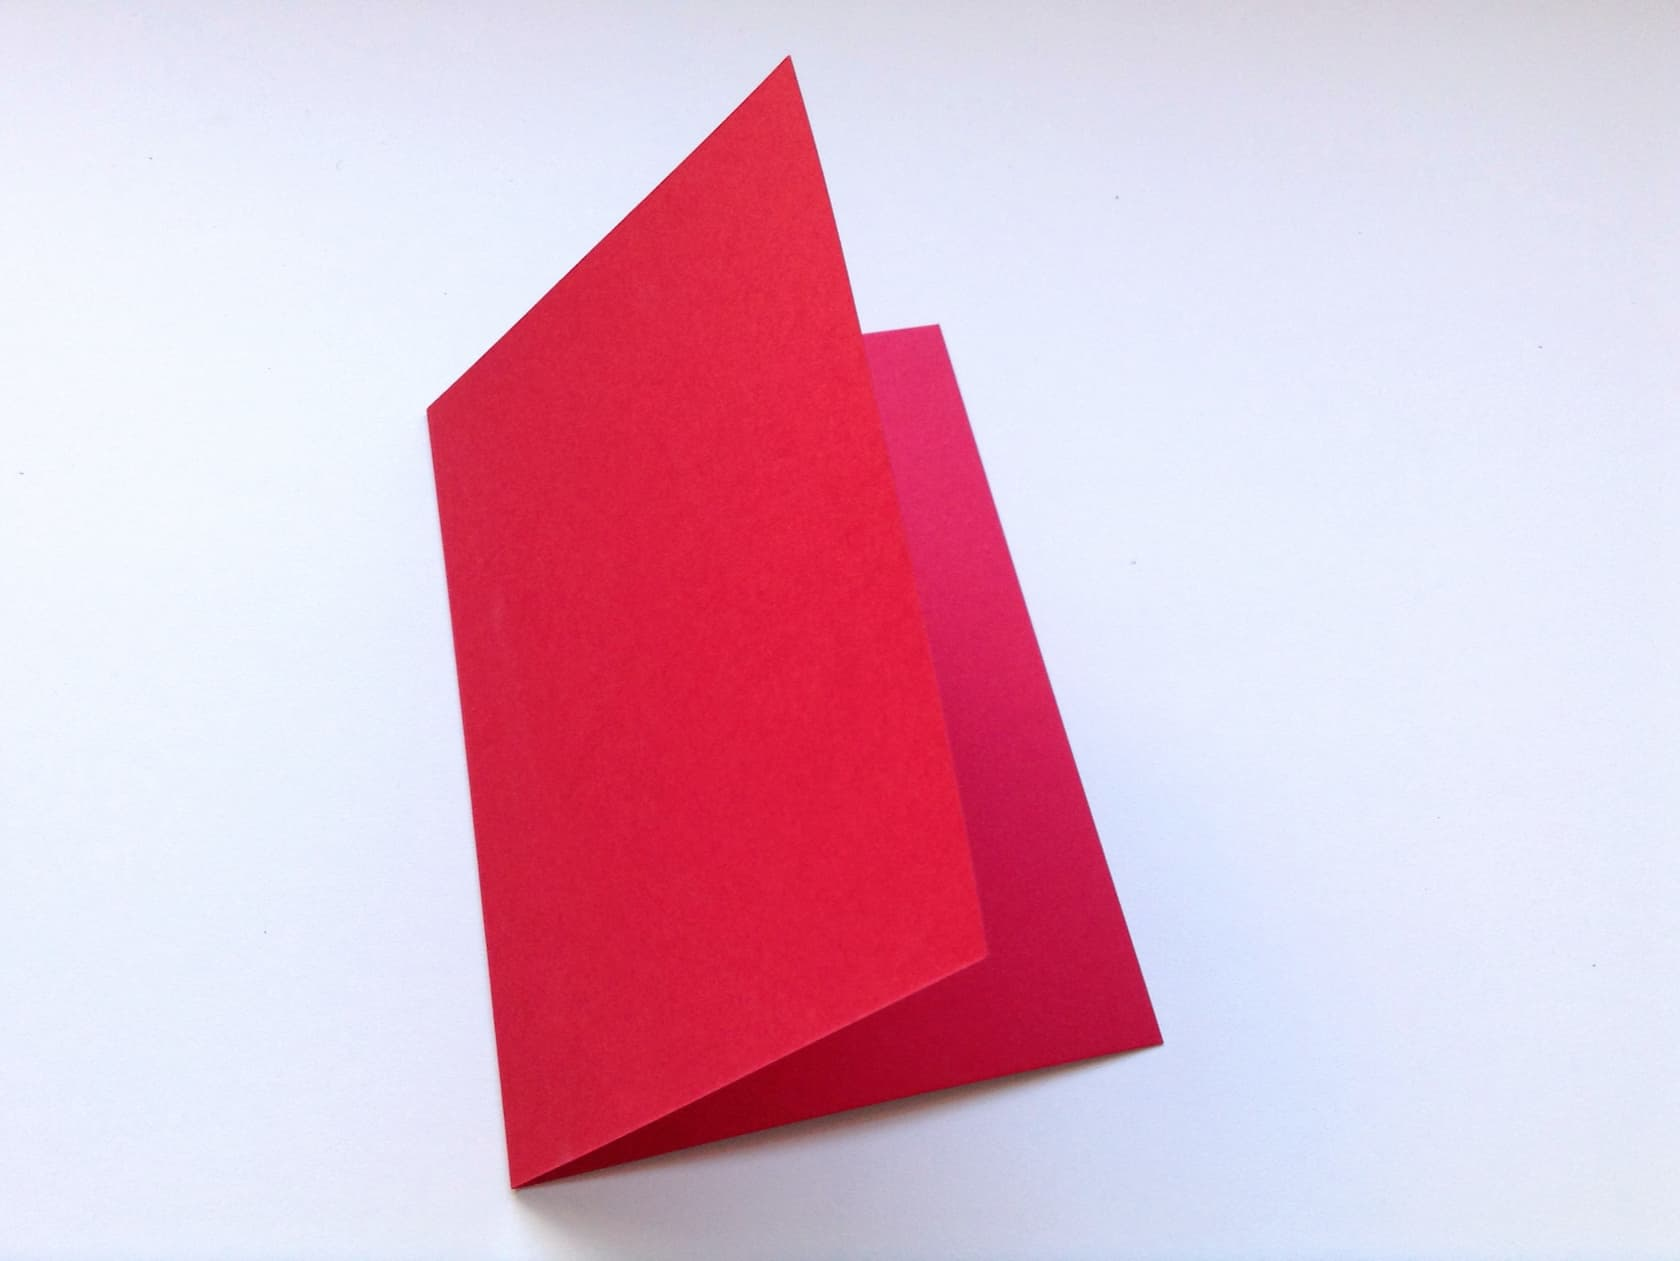 Fold the red card in half